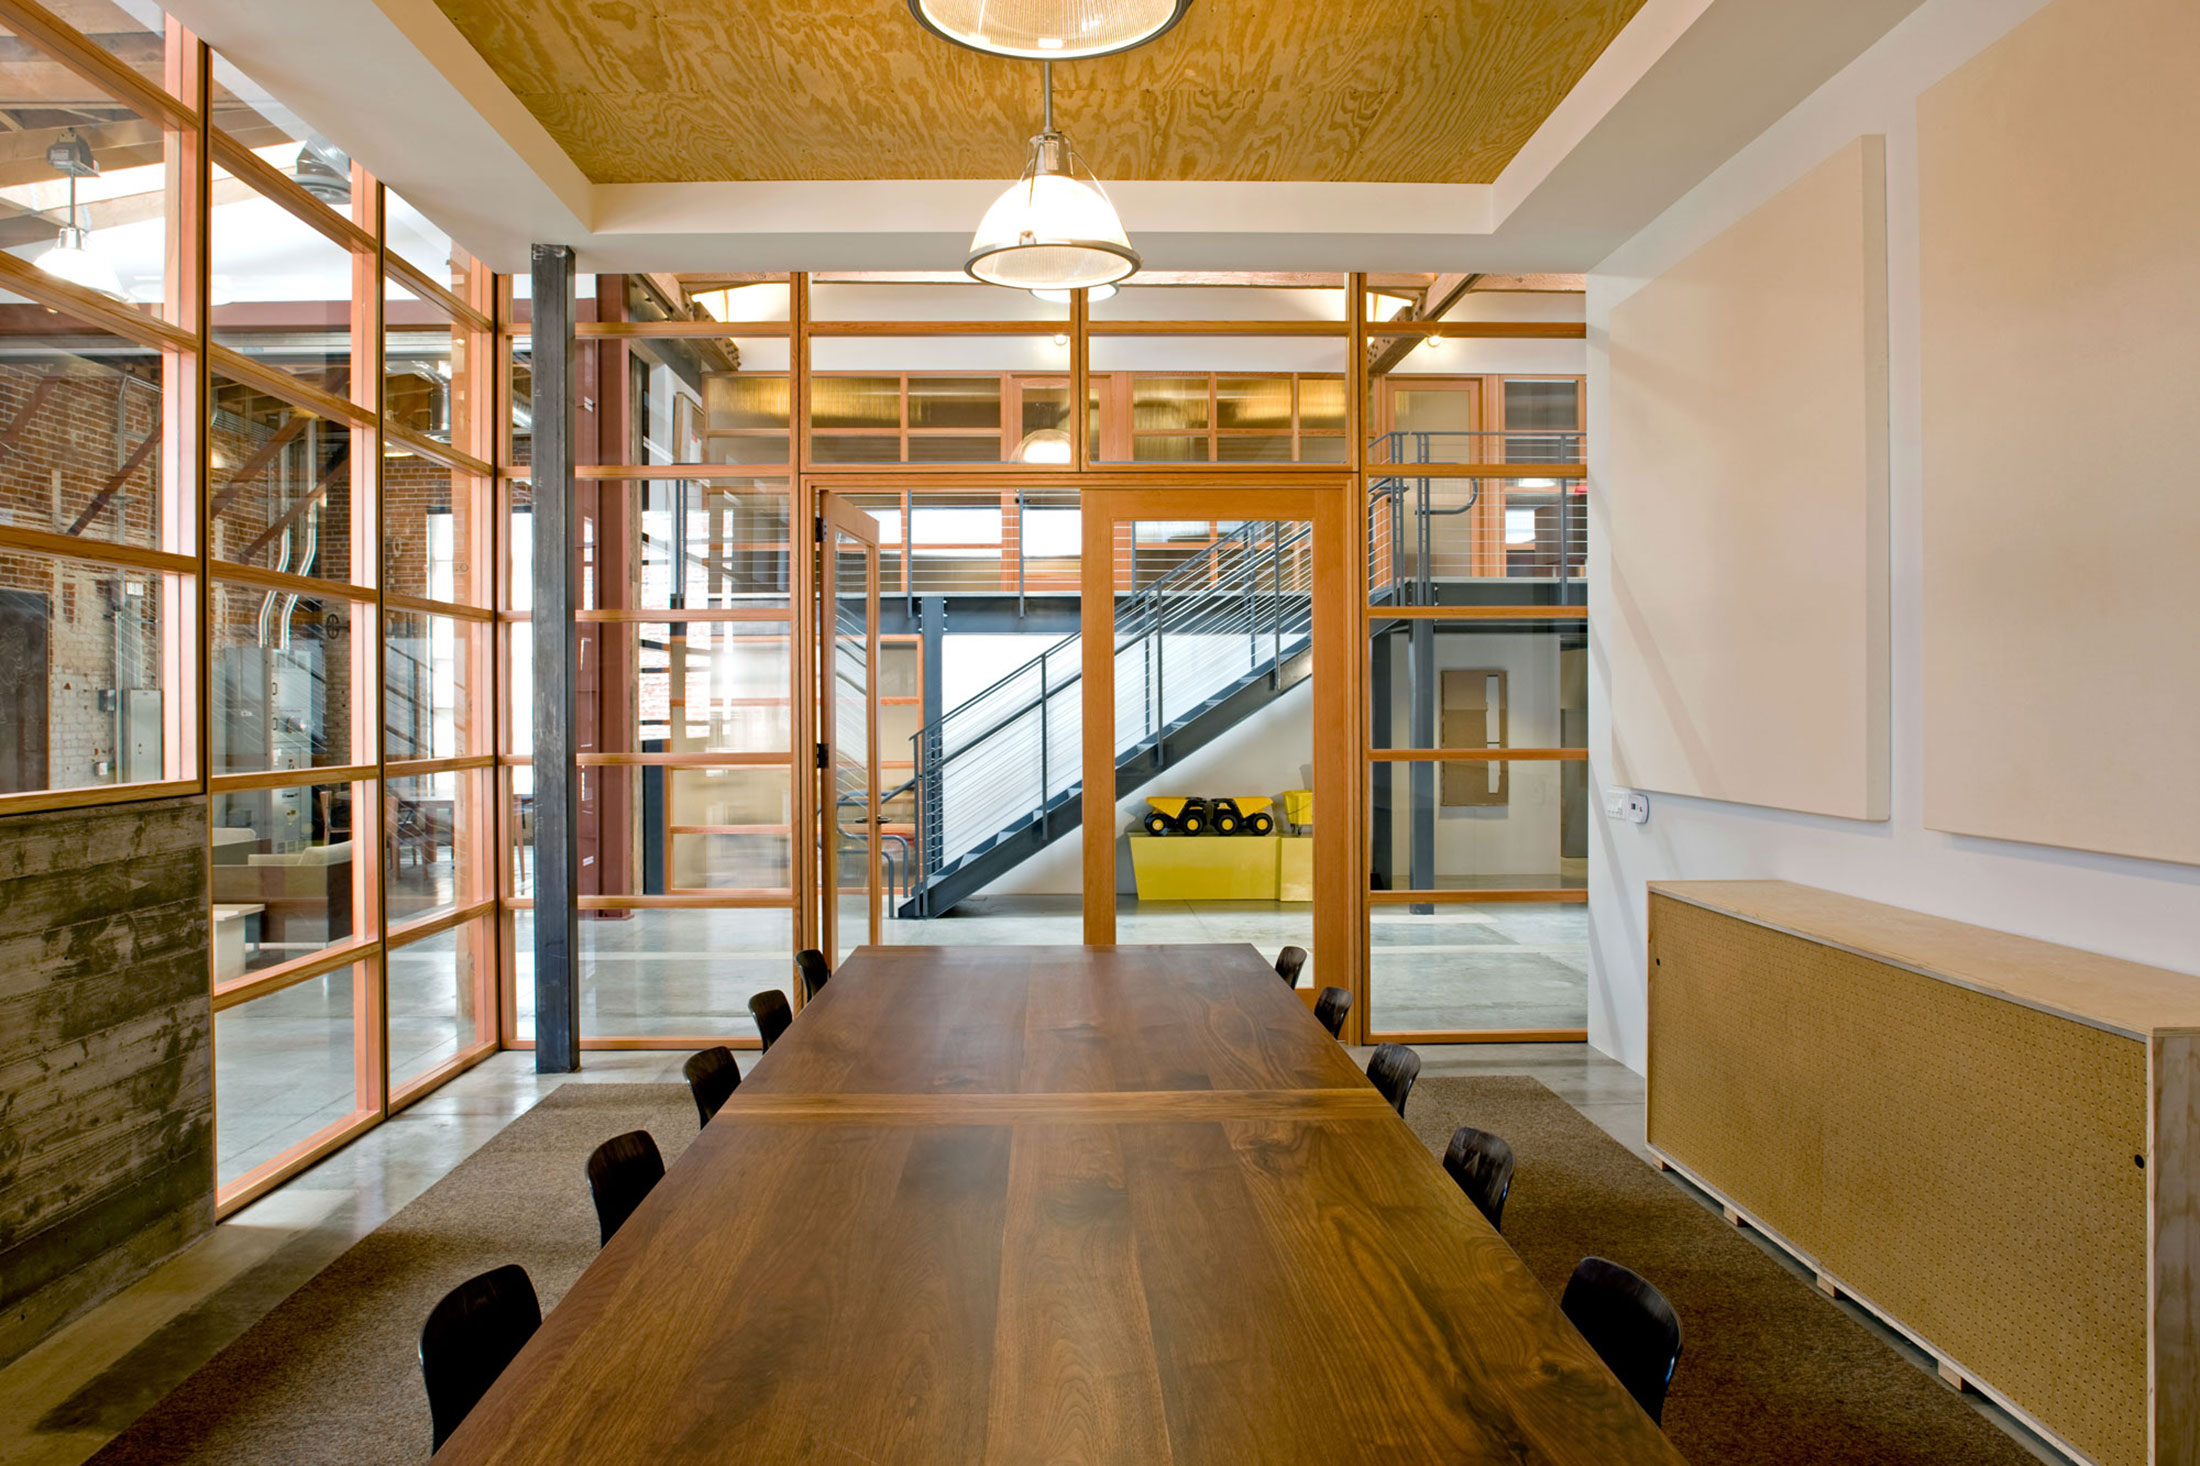 modern-architecture-commercial-interiors-creative-office-adaptive-reuse-california-shubindonaldson-biscuit-filmworks-04